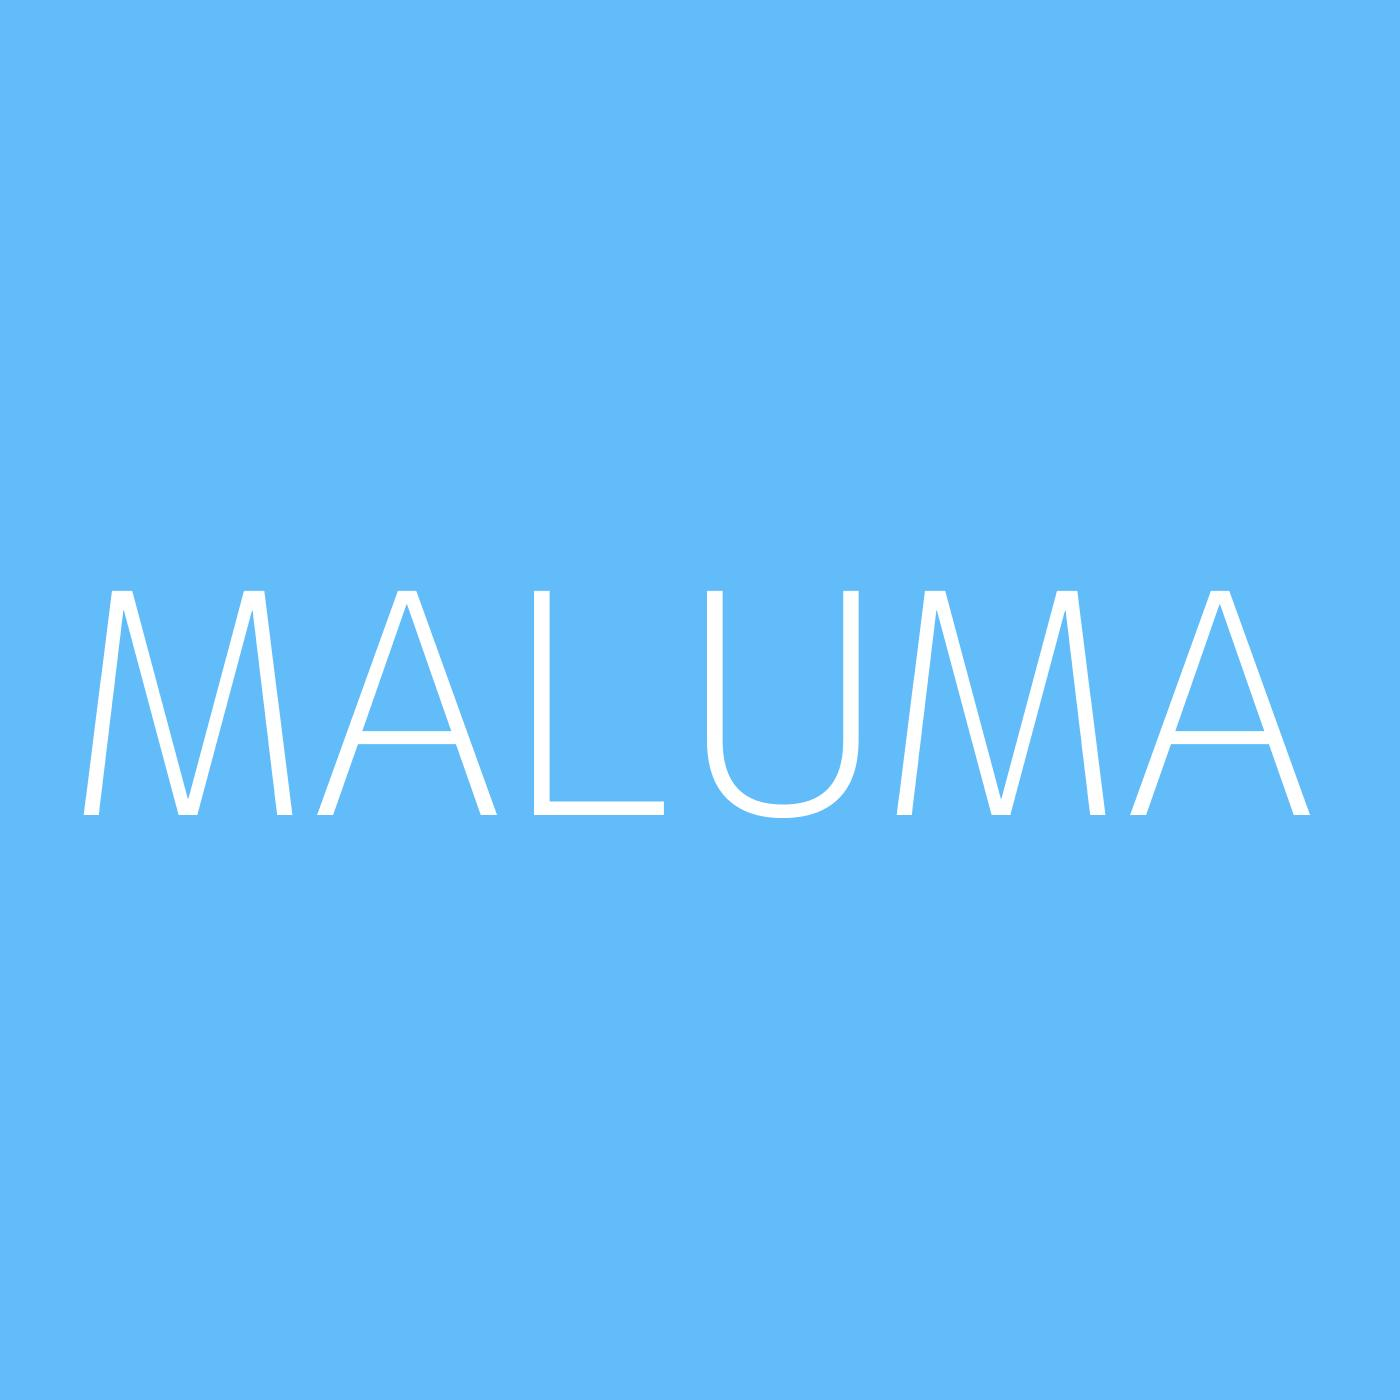 Maluma Playlist Artwork